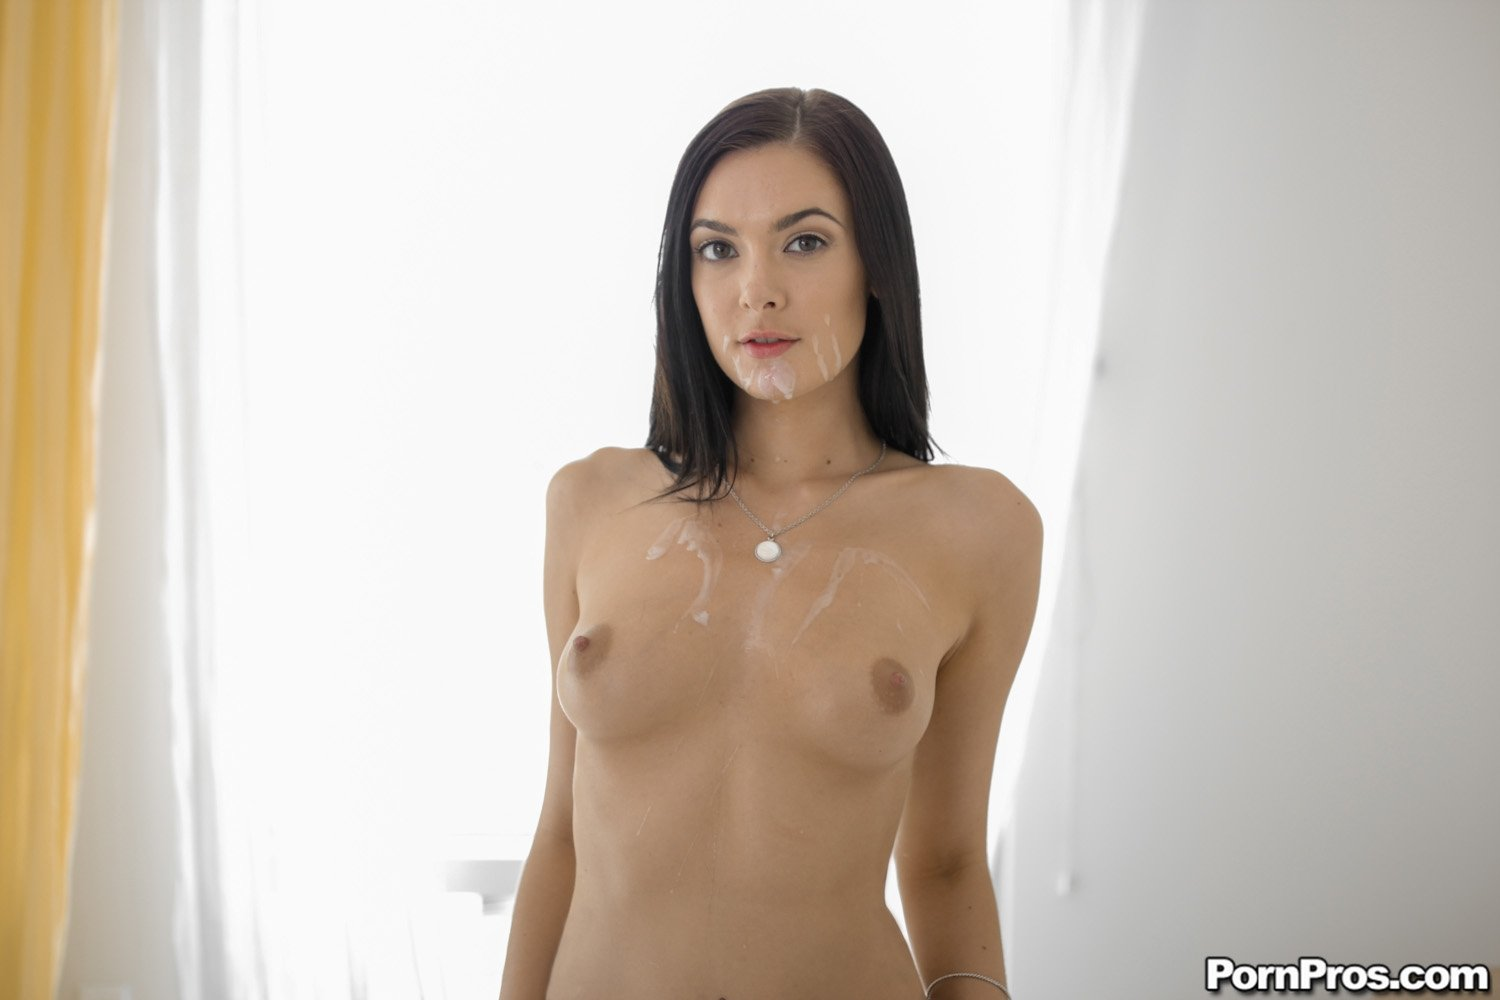 i want to share my wife